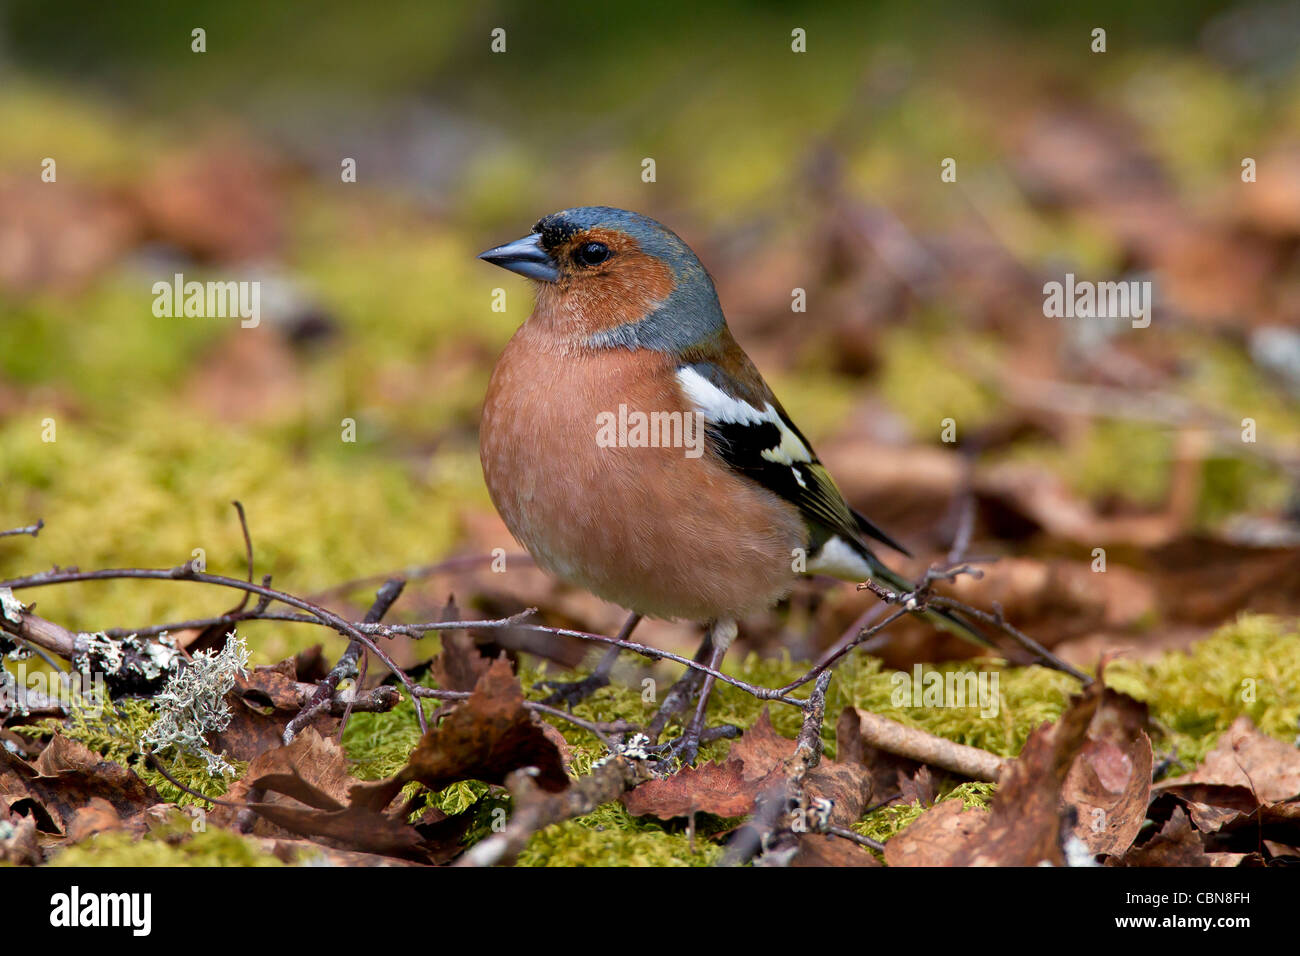 Chaffinch (Fringilla coelebs) male foraging on the ground in autumn forest, Sweden - Stock Image